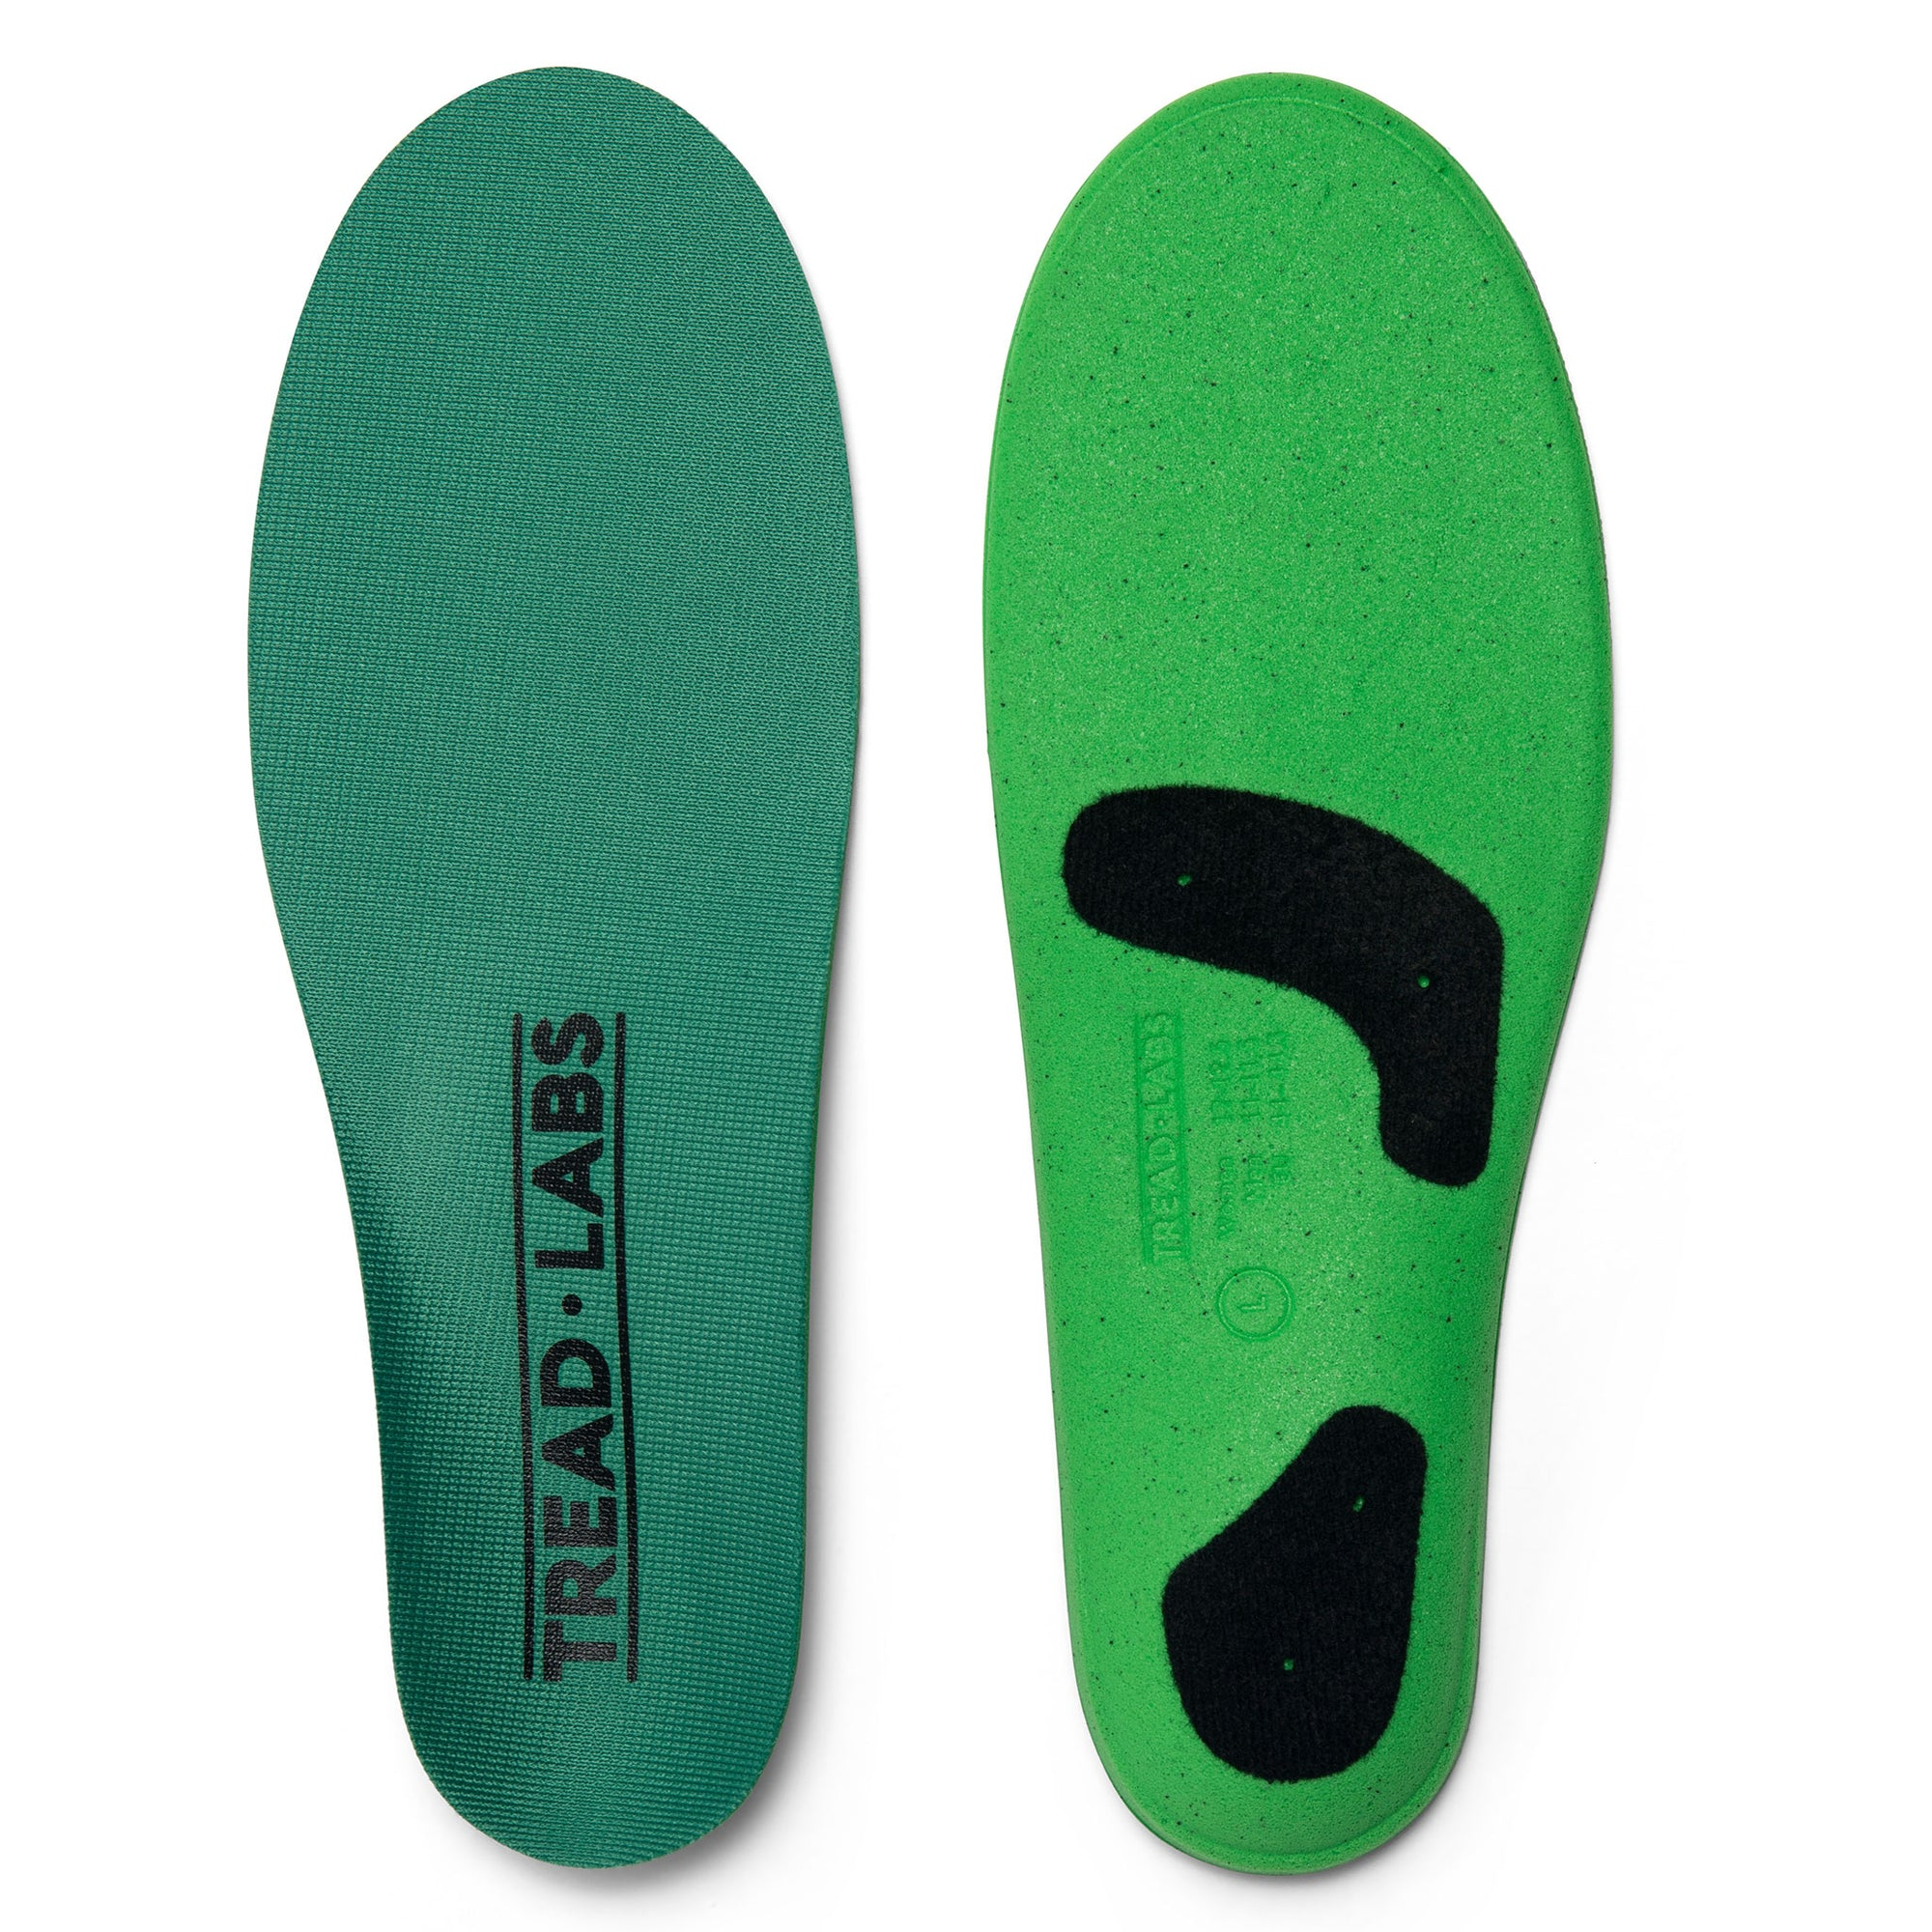 Replacement Top Covers For Ramble Comfort Insoles From Tread Labs